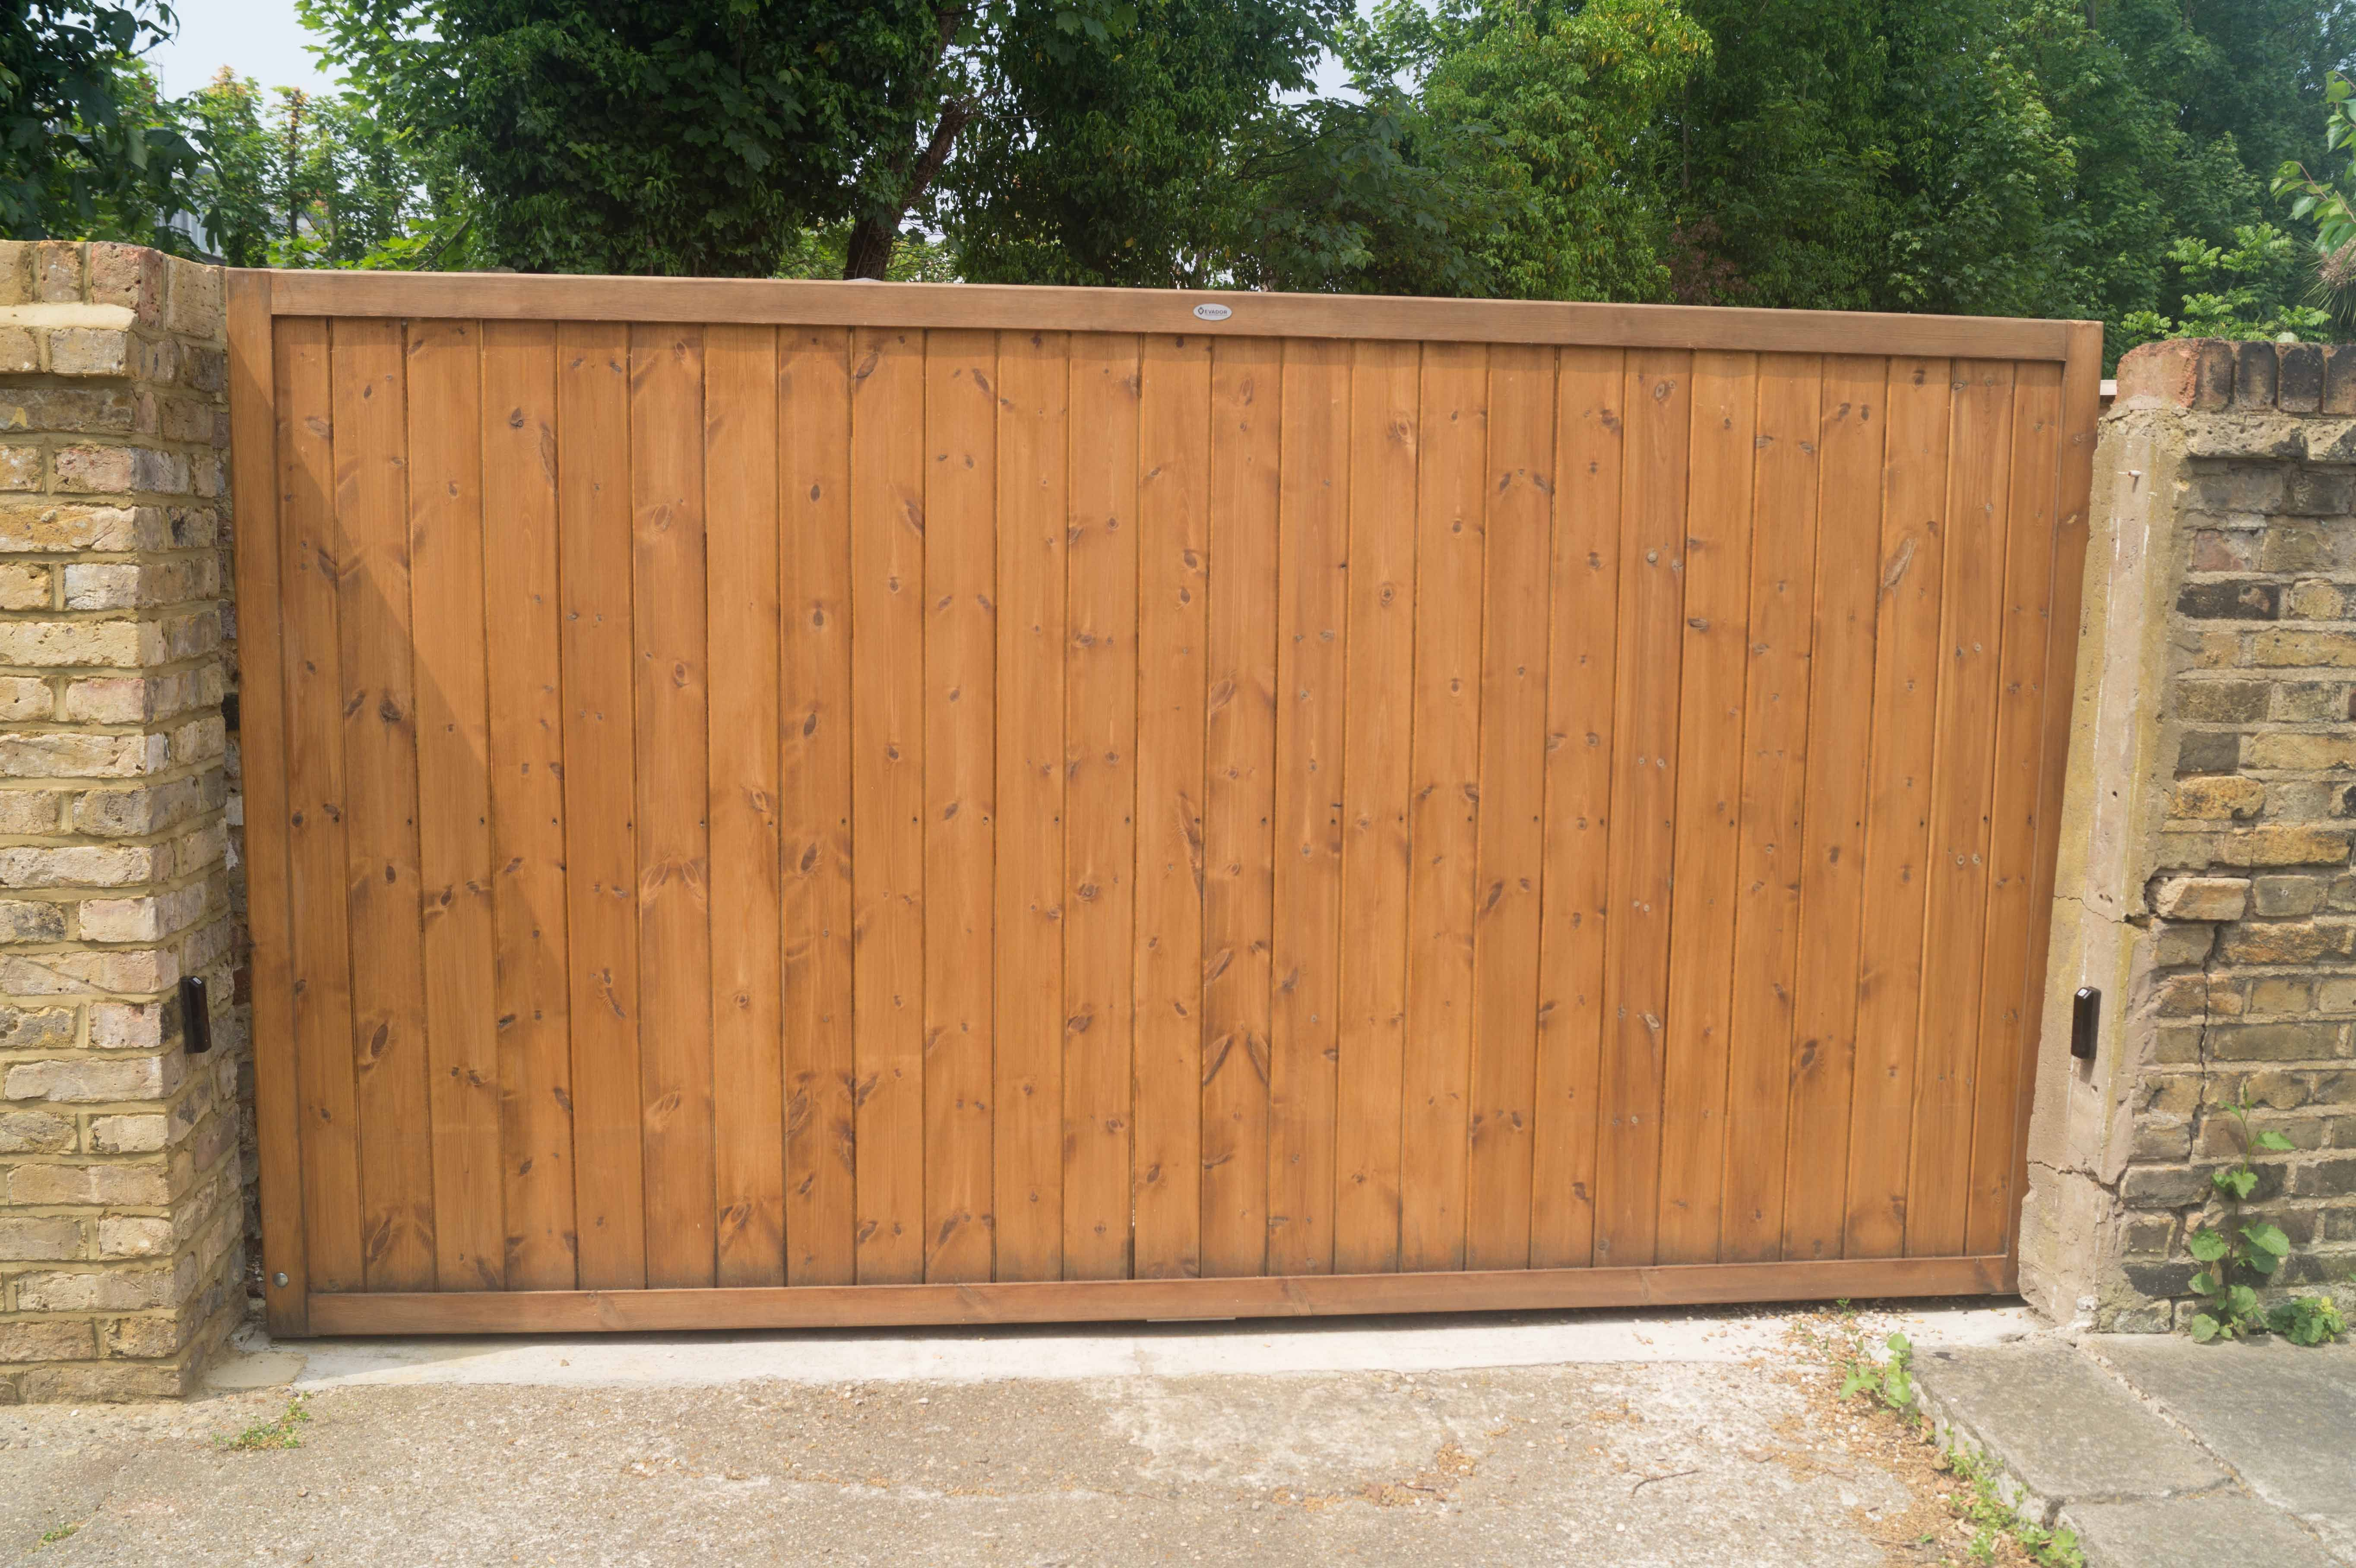 Simple Flat Top Sliding Gate Design With Automation Constructed Using Slow Grown Redwood Pine With A Medium Oak S Wood Fence Design Fence Design Sliding Gate